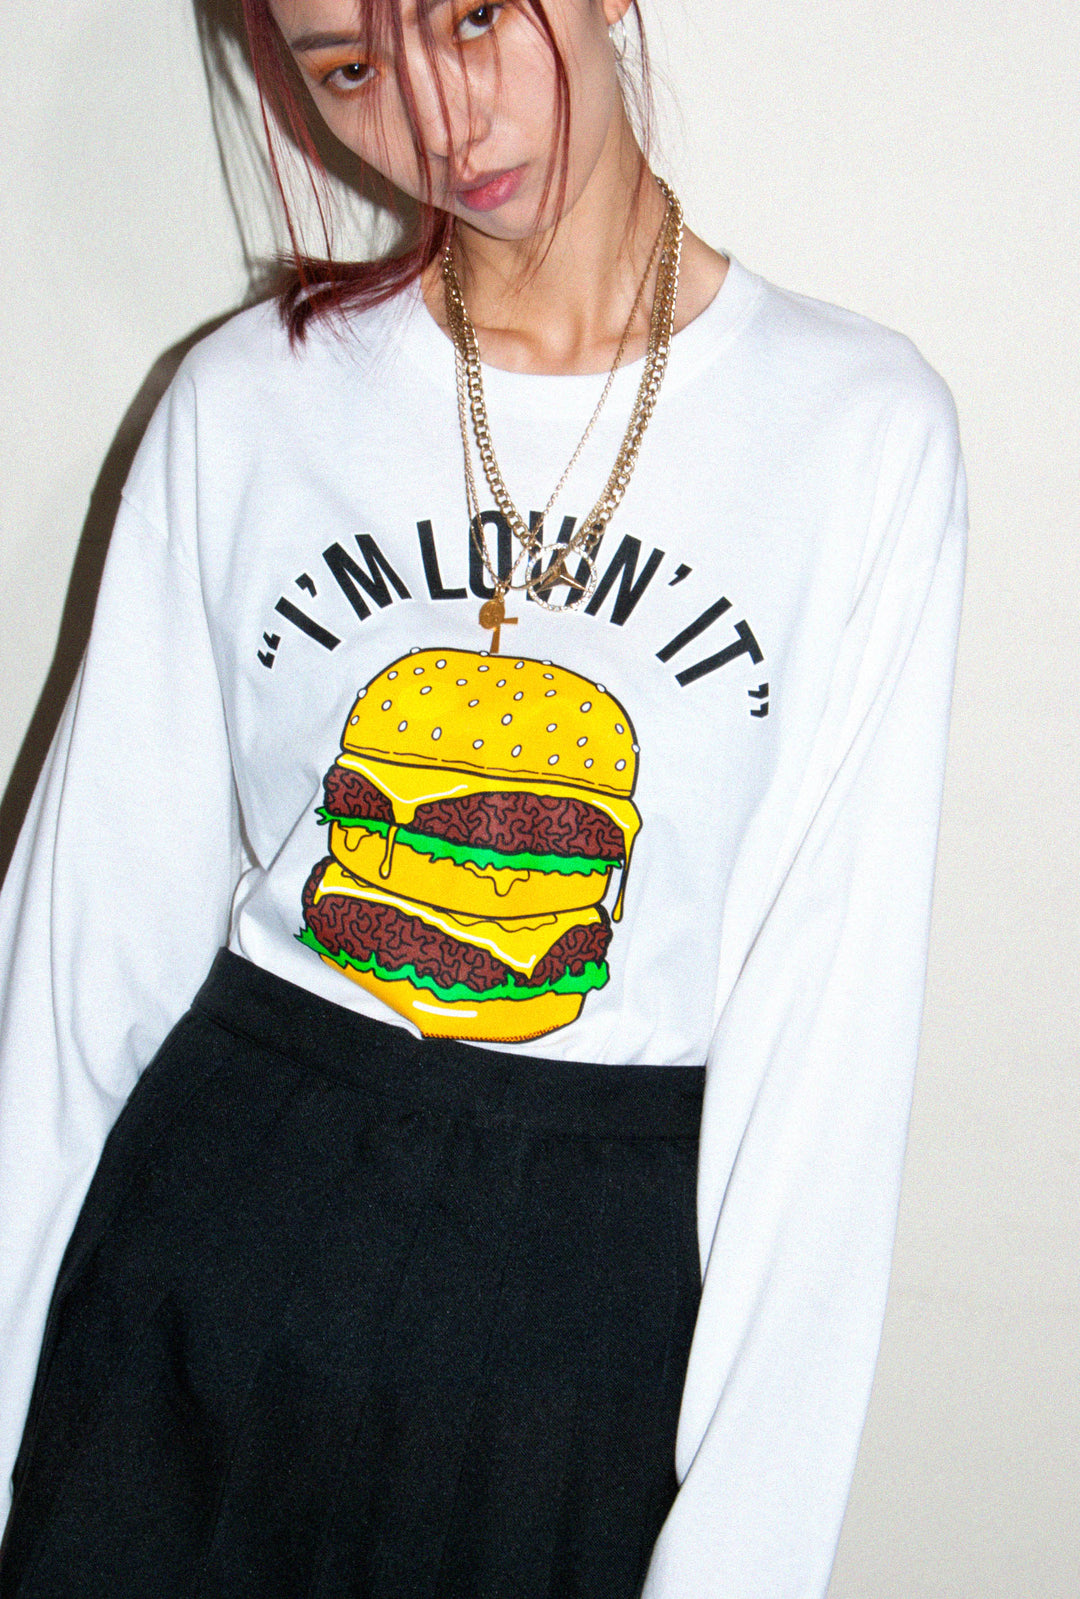 LOVIN' IT longsleeve t-shirt